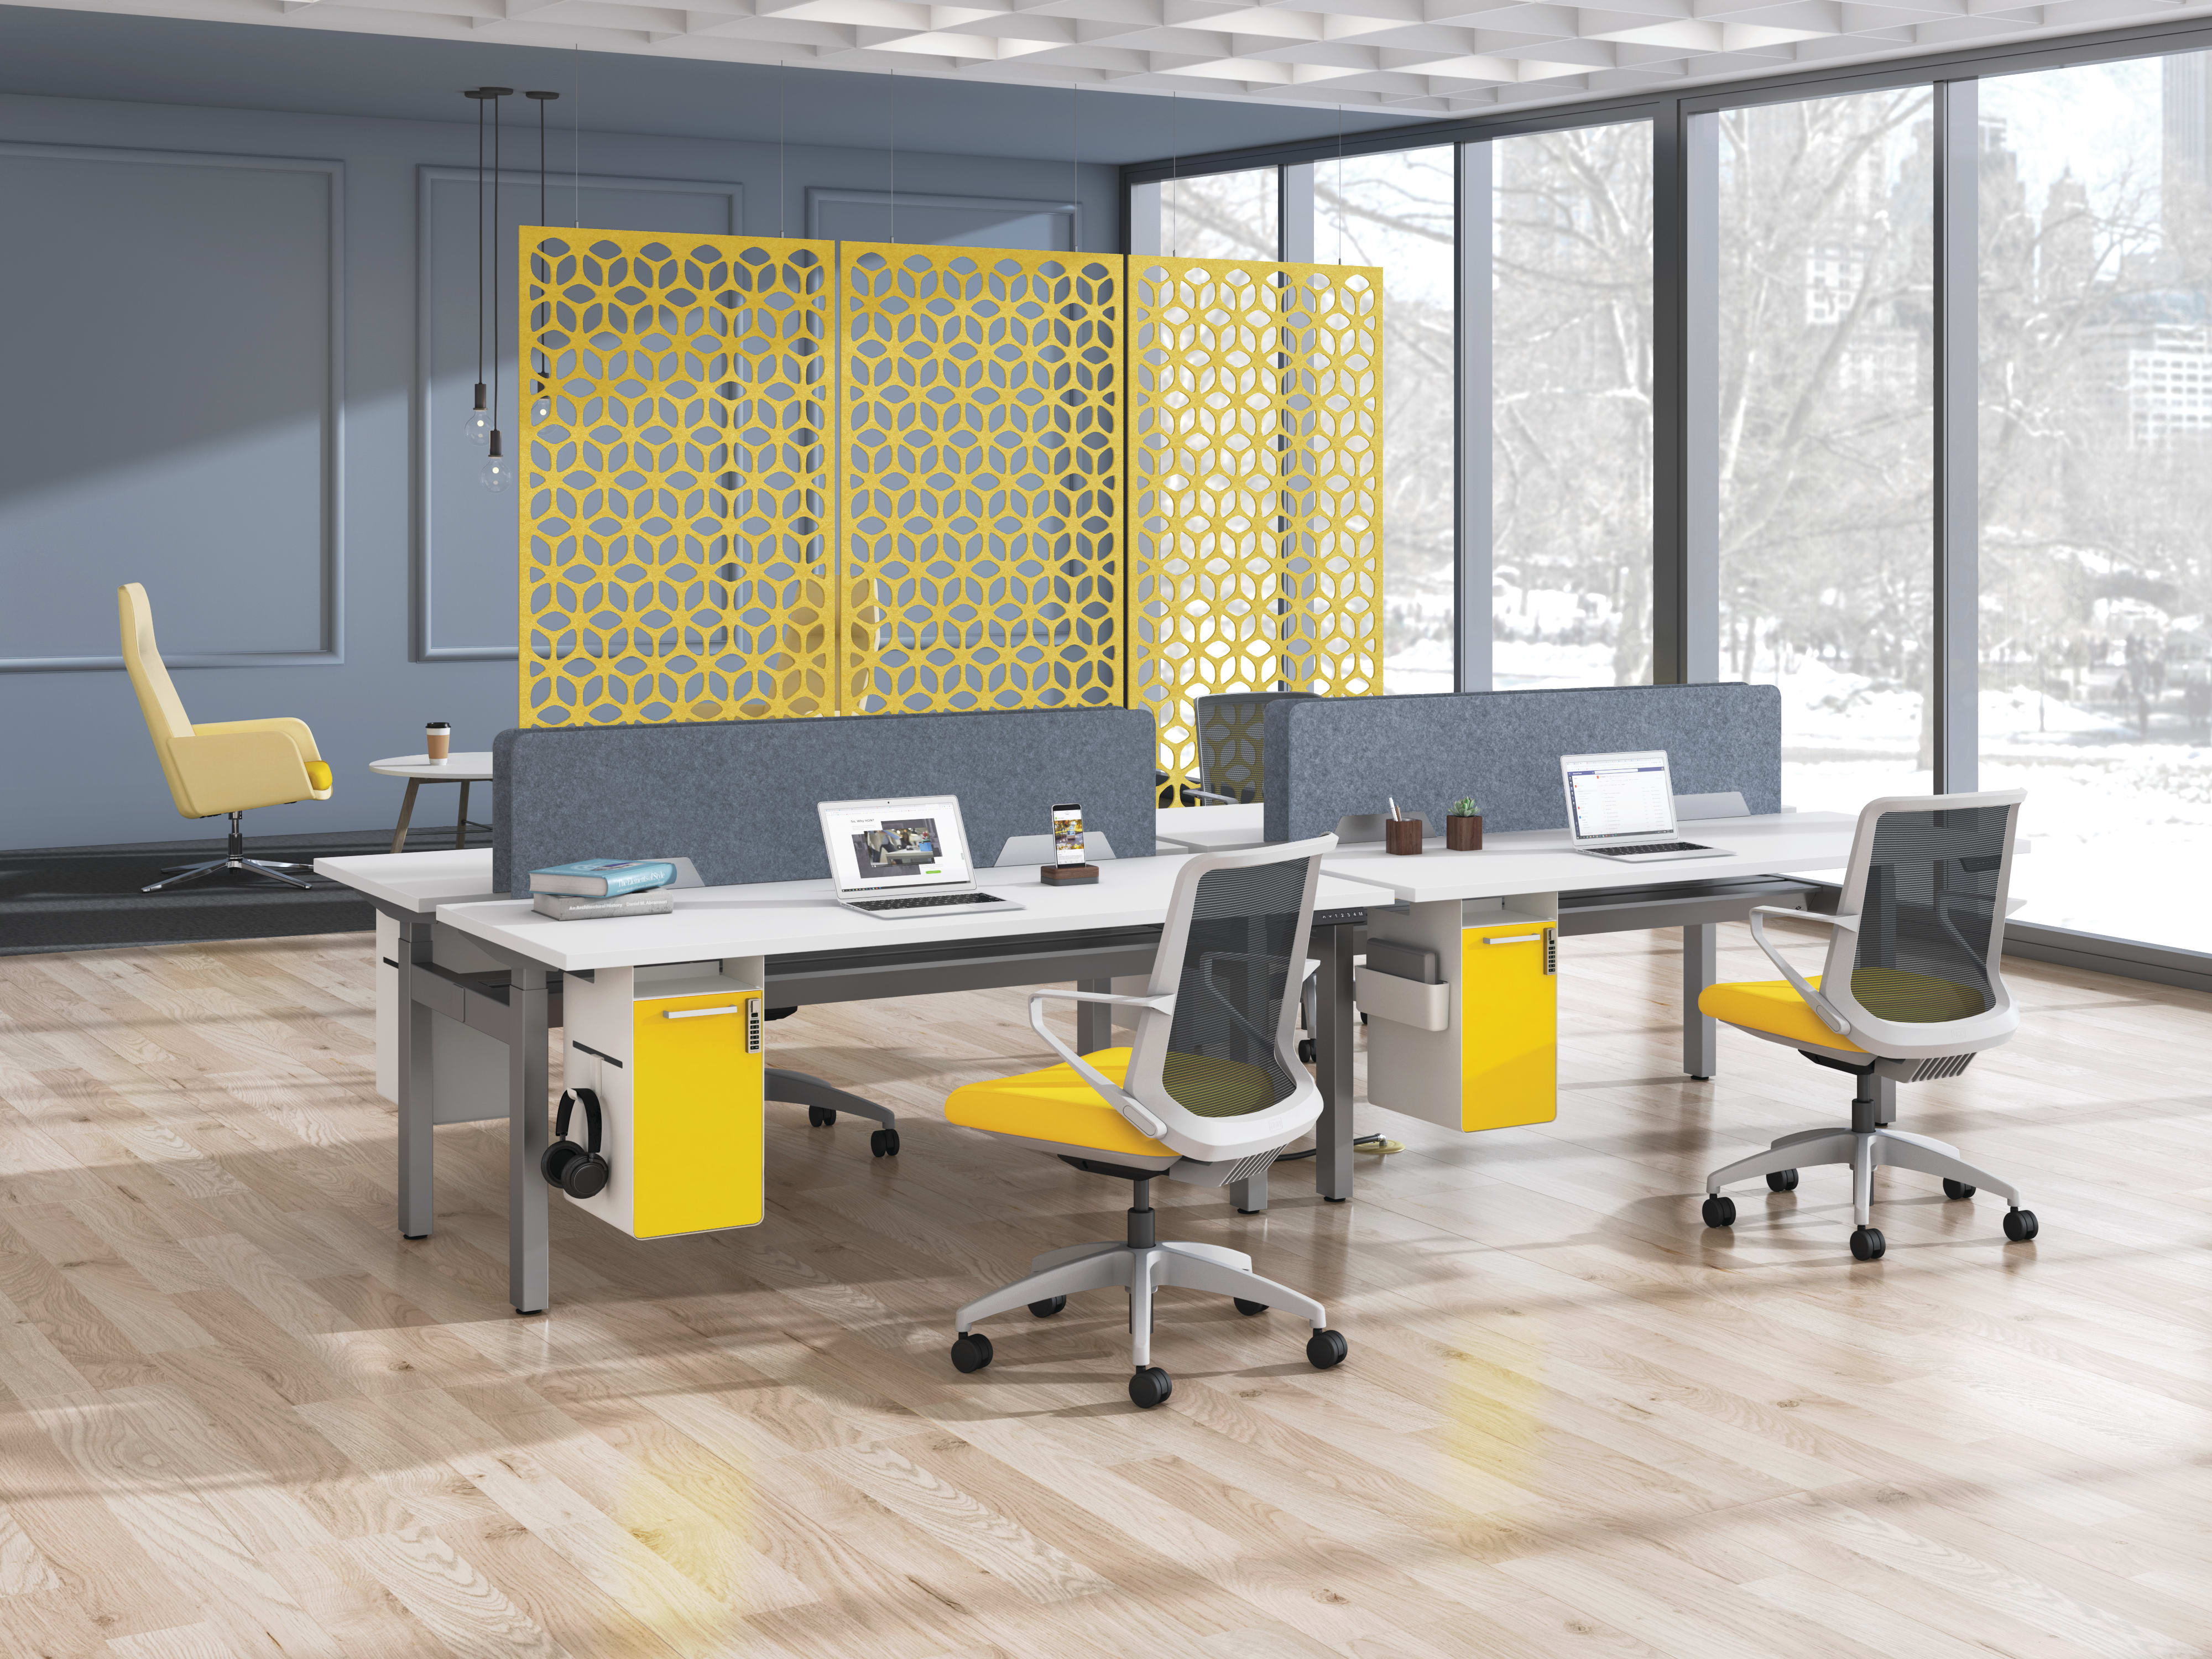 Empower workstations shown with Fuse pedestals and Cliq seating. Open plan space is divided by Unika Vaev hanging screens.